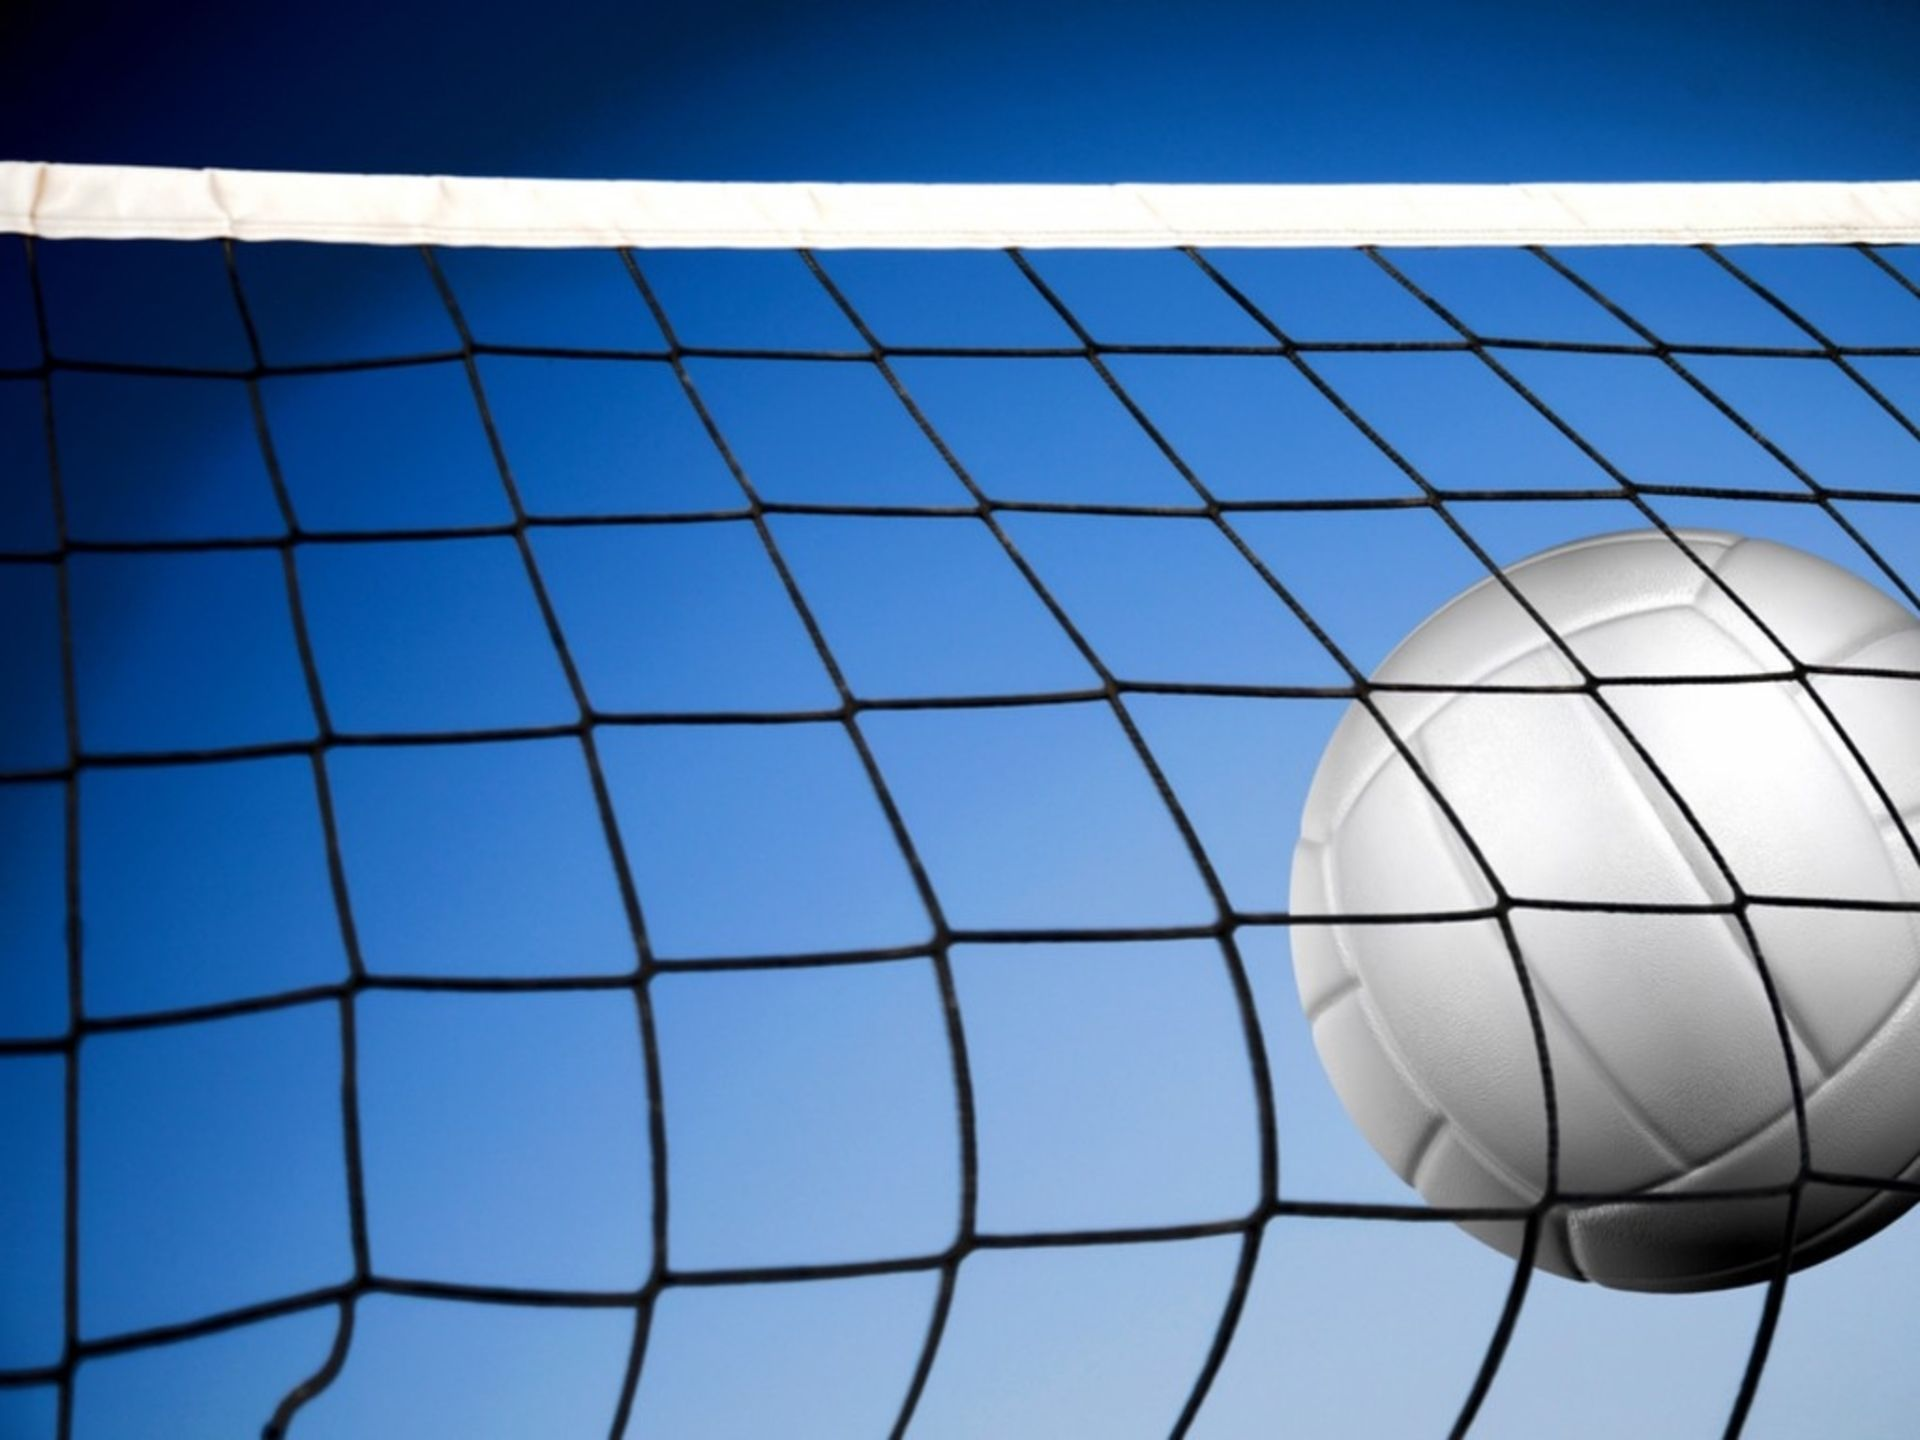 Volleyball Wallpaper Google Search Indoor Volleyball Volleyball Wallpaper Volleyball Clubs